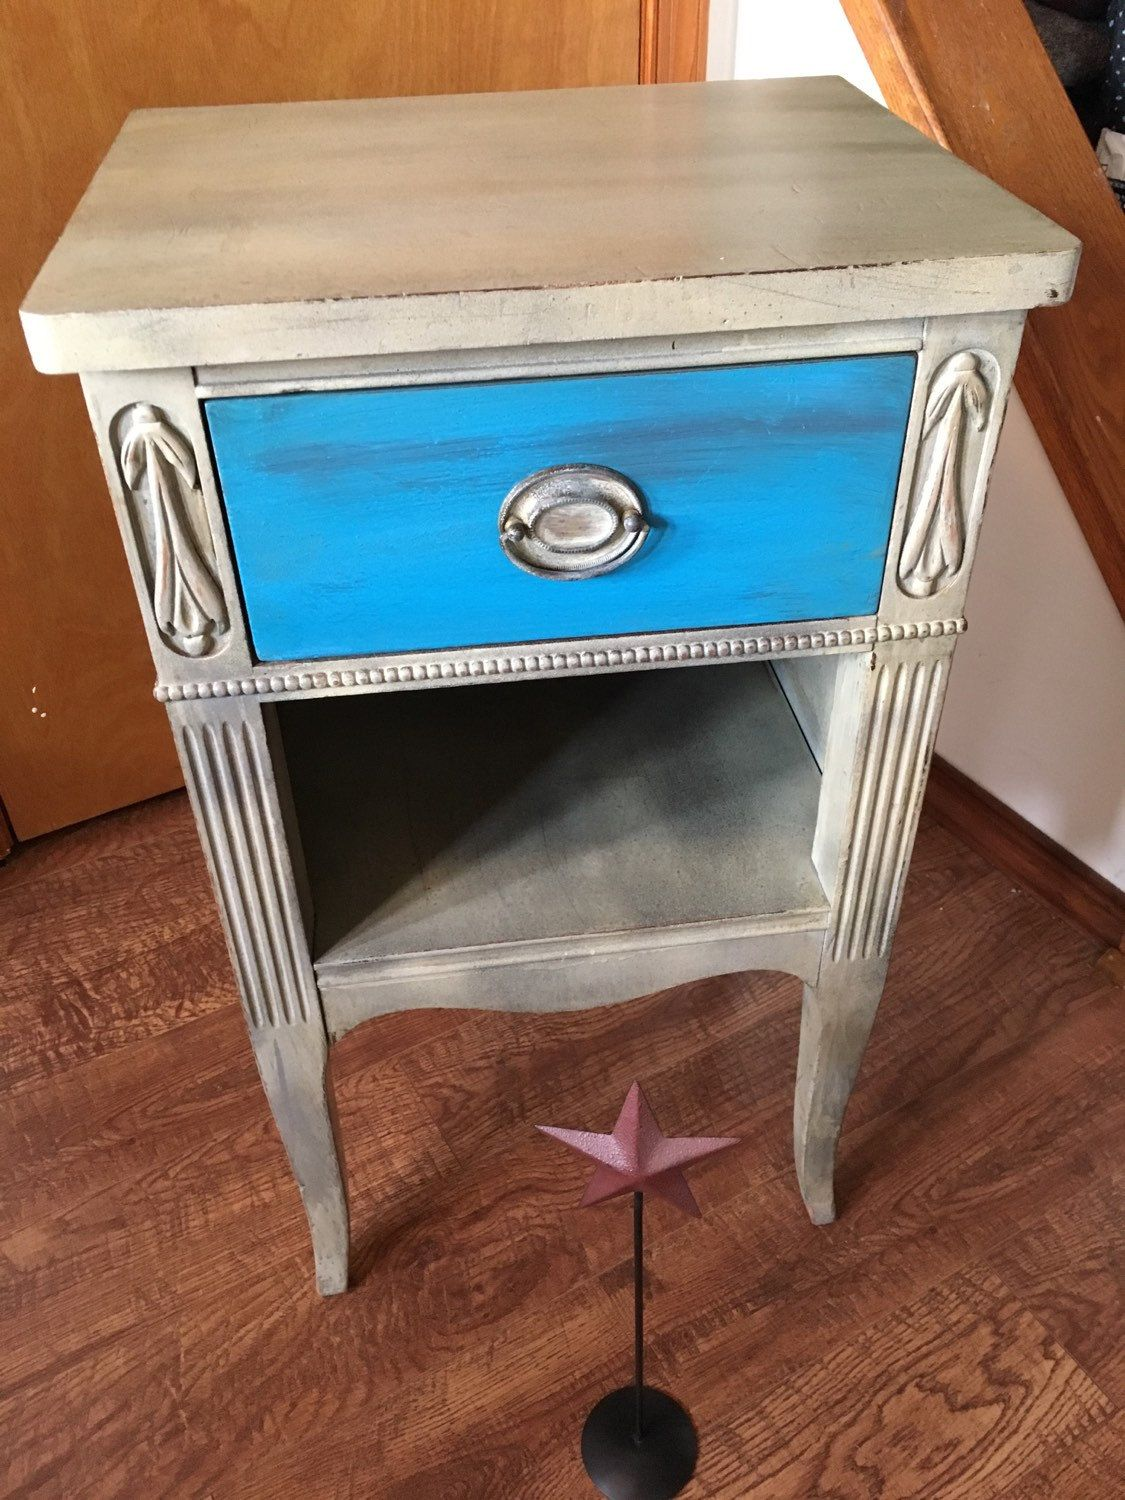 drawer vintage country rustic accent table distressed painted and gray glazed with granite robin egg blue the seneca falls rusticrestorationusa home decor accents lucite nesting